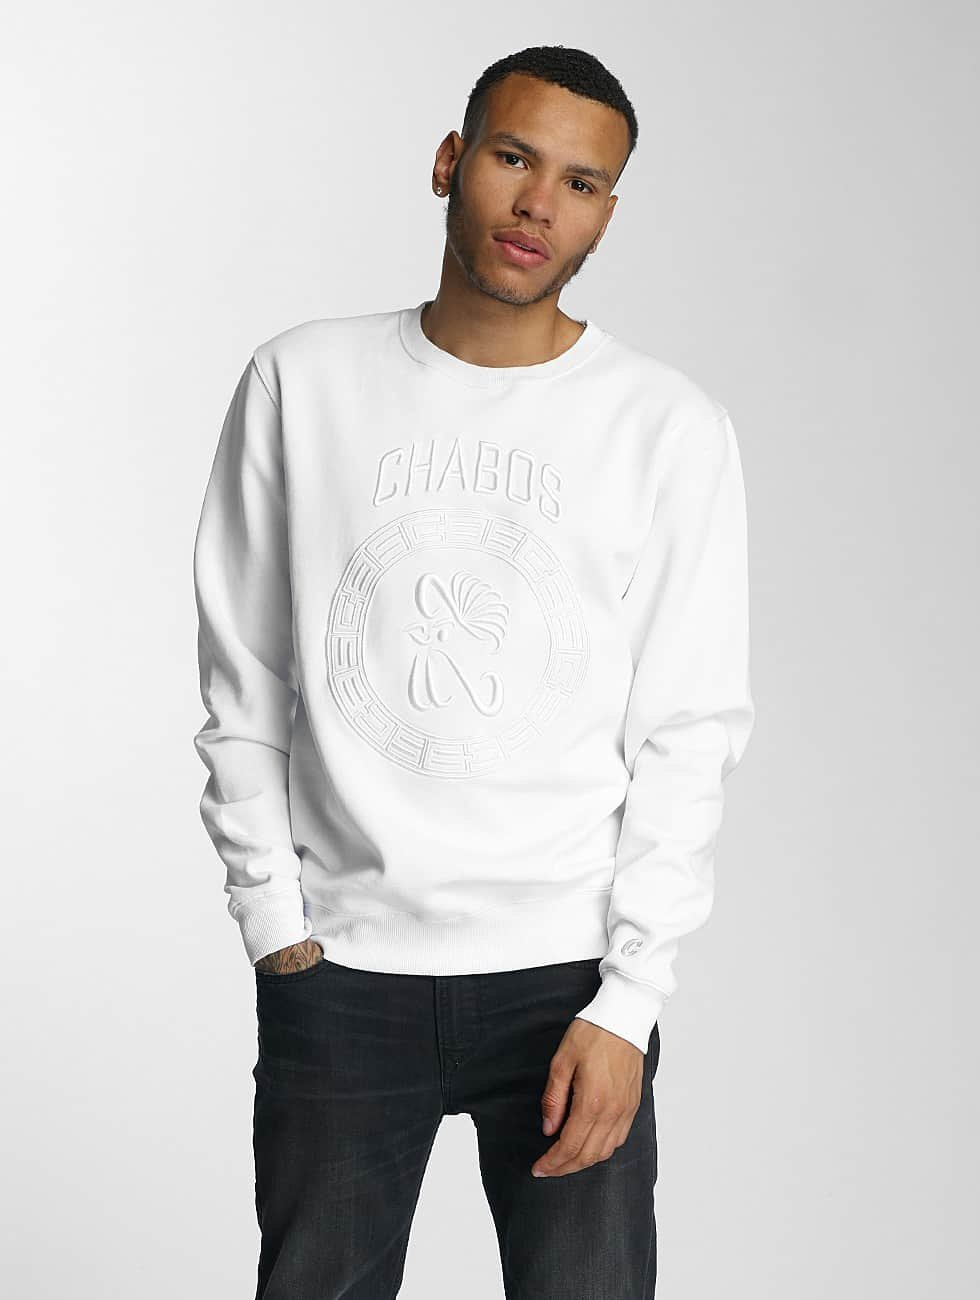 CHABOS IIVII Pullover Palazzo white